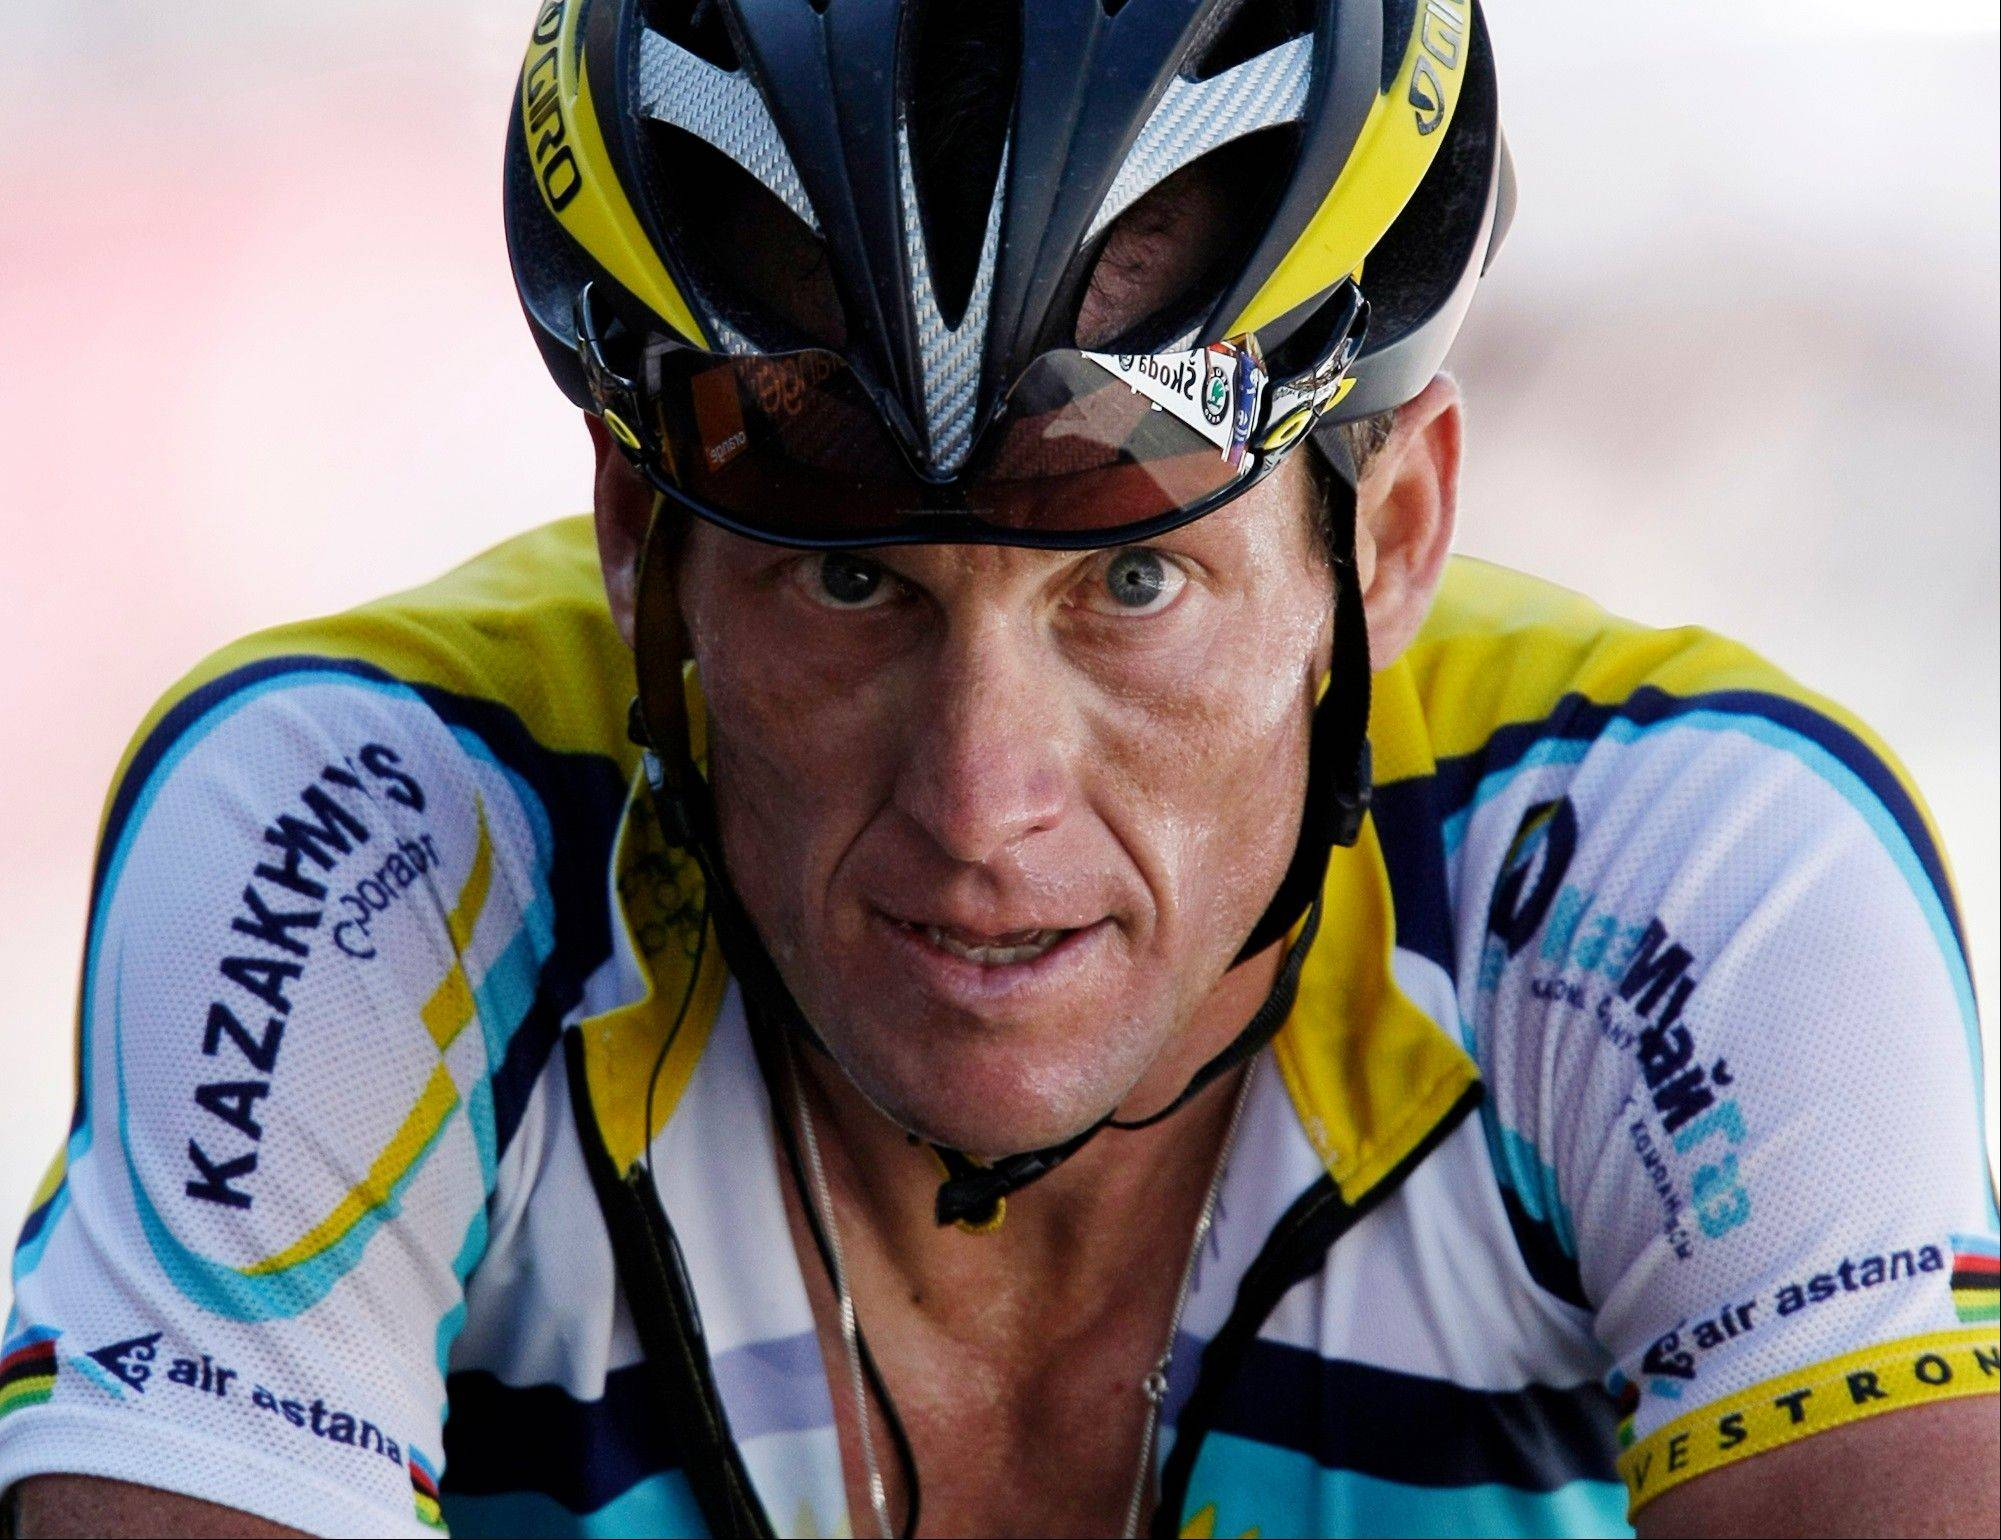 In this July 19, 2009, file photo, Lance Armstrong crosses the finish line during the 15th stage of the Tour de France cycling race in Verbier, Switzerland. Armstrong confessed to using performance-enhancing drugs to win the Tour de France during a taped interview with Oprah Winfrey that aired Thursday, reversing more than a decade of denial.